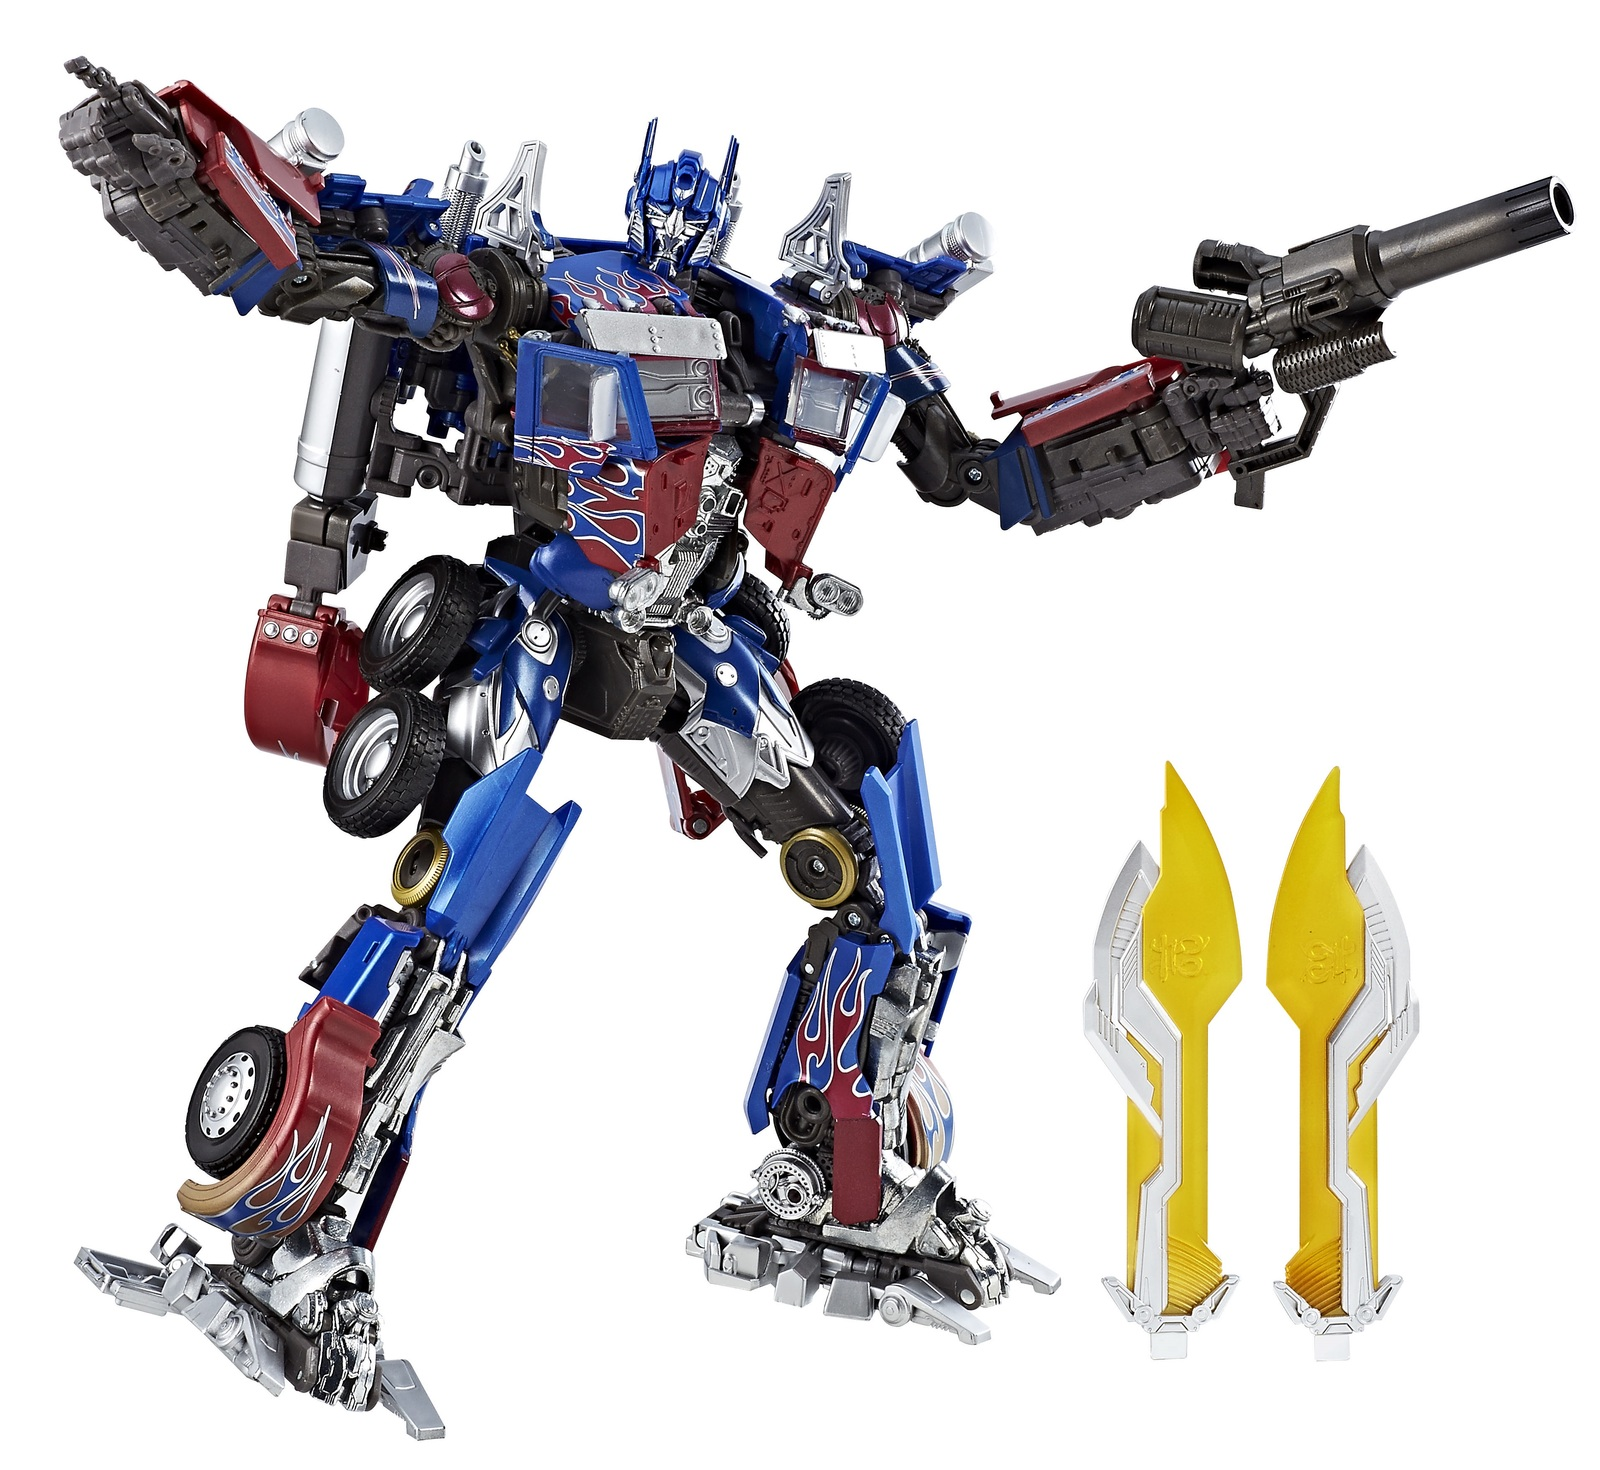 Transformers: The Last Knight - Masterpiece - Optimus Prime image